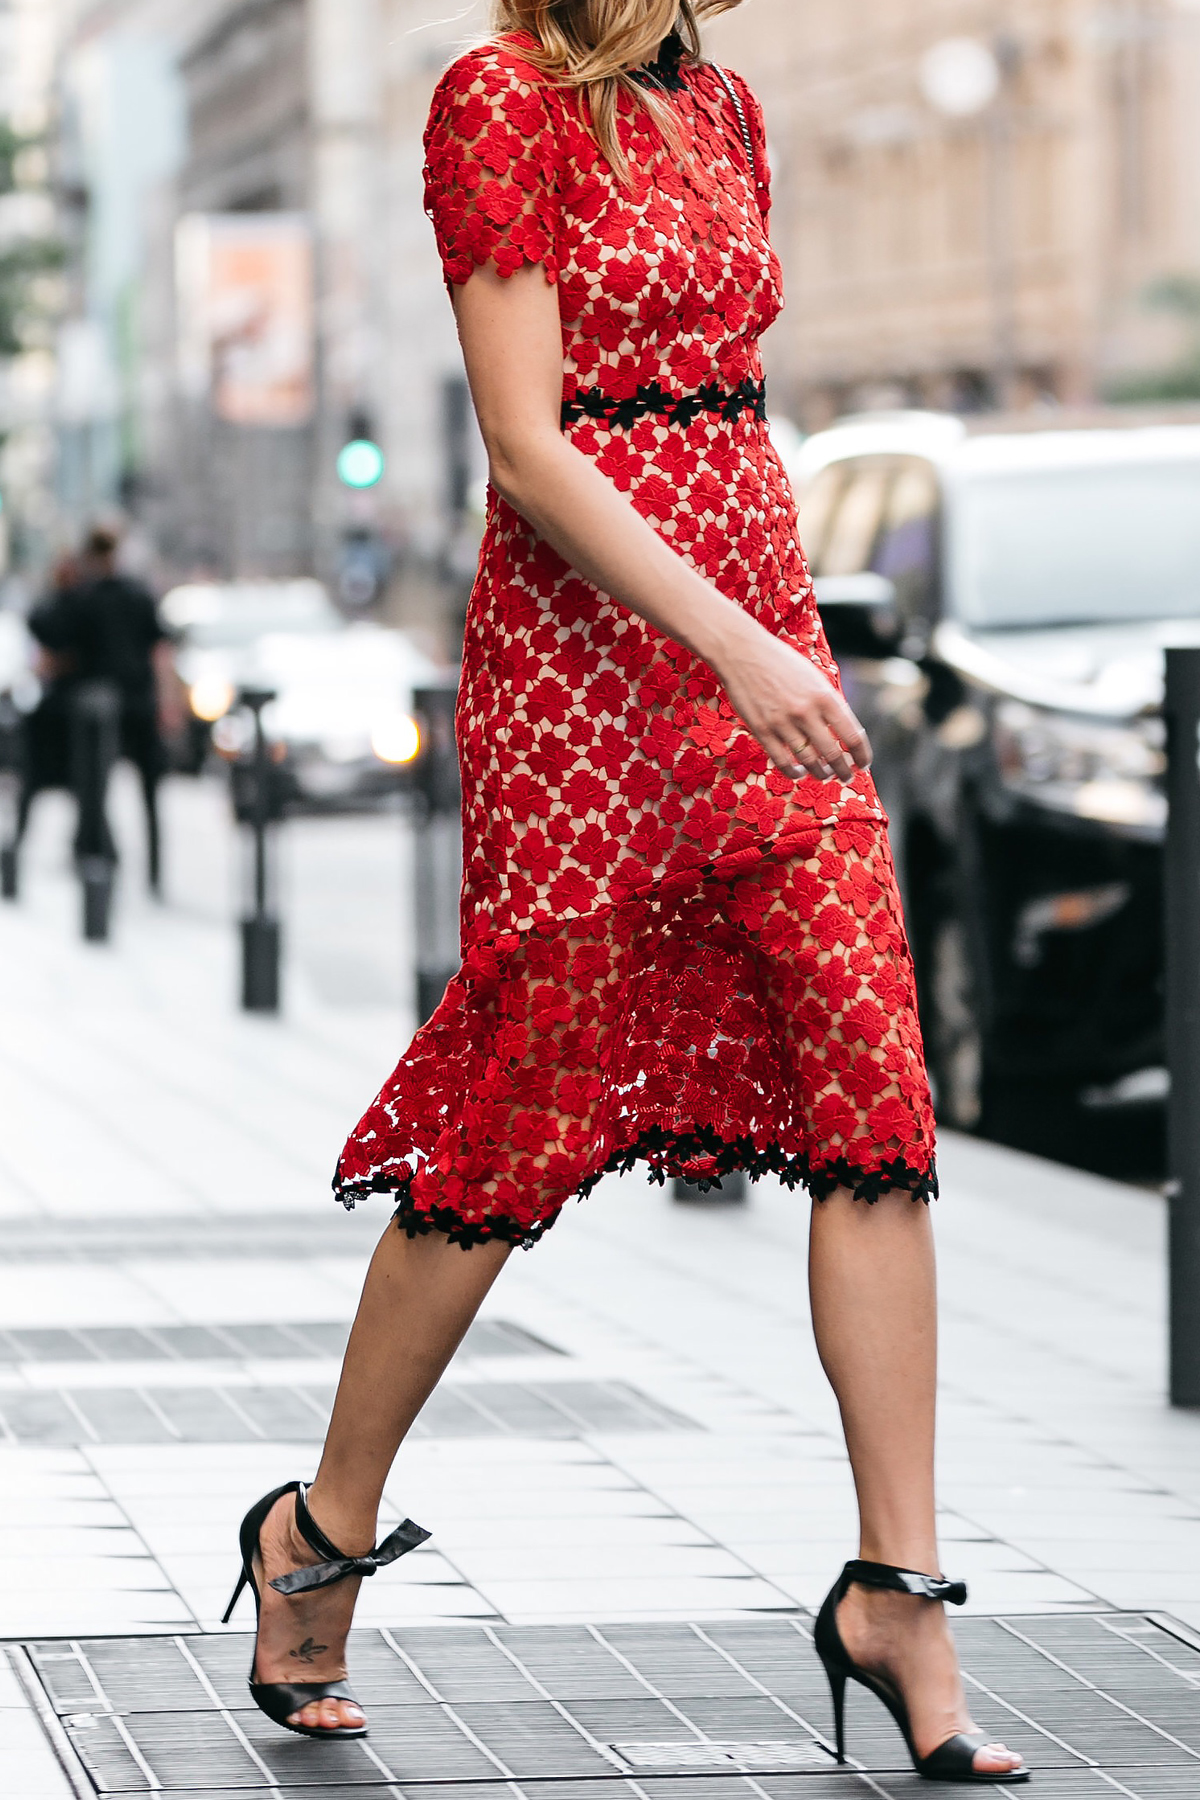 Fashion Jackson, Dallas Blogger, Fashion Blogger, Street Style, Jill Stuart Floral Red Lace Dress, Black Ankle Strap Bow Heels